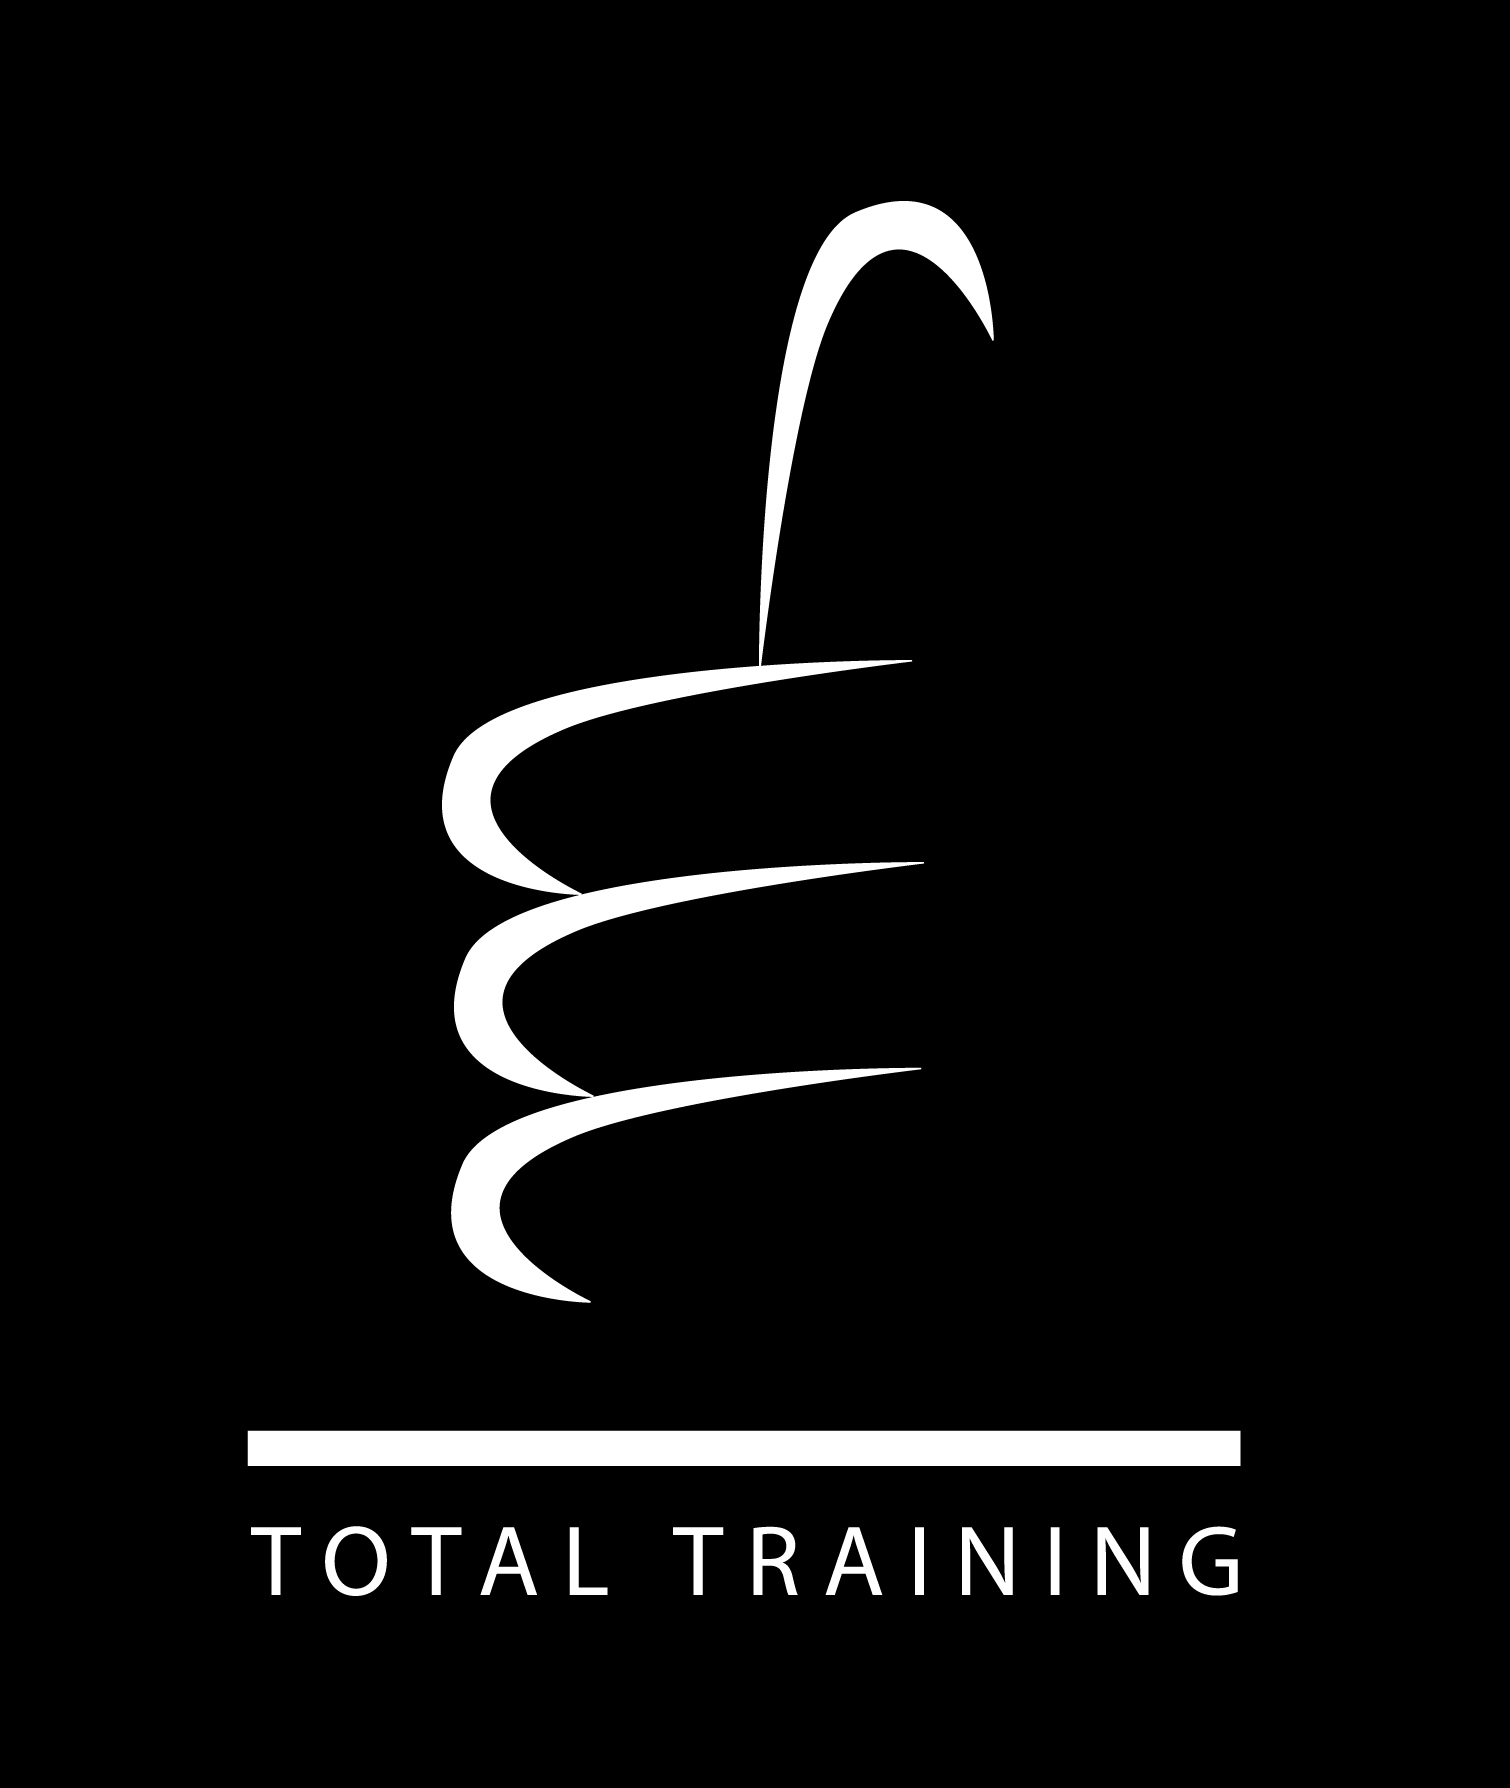 logo_the total training.FH11